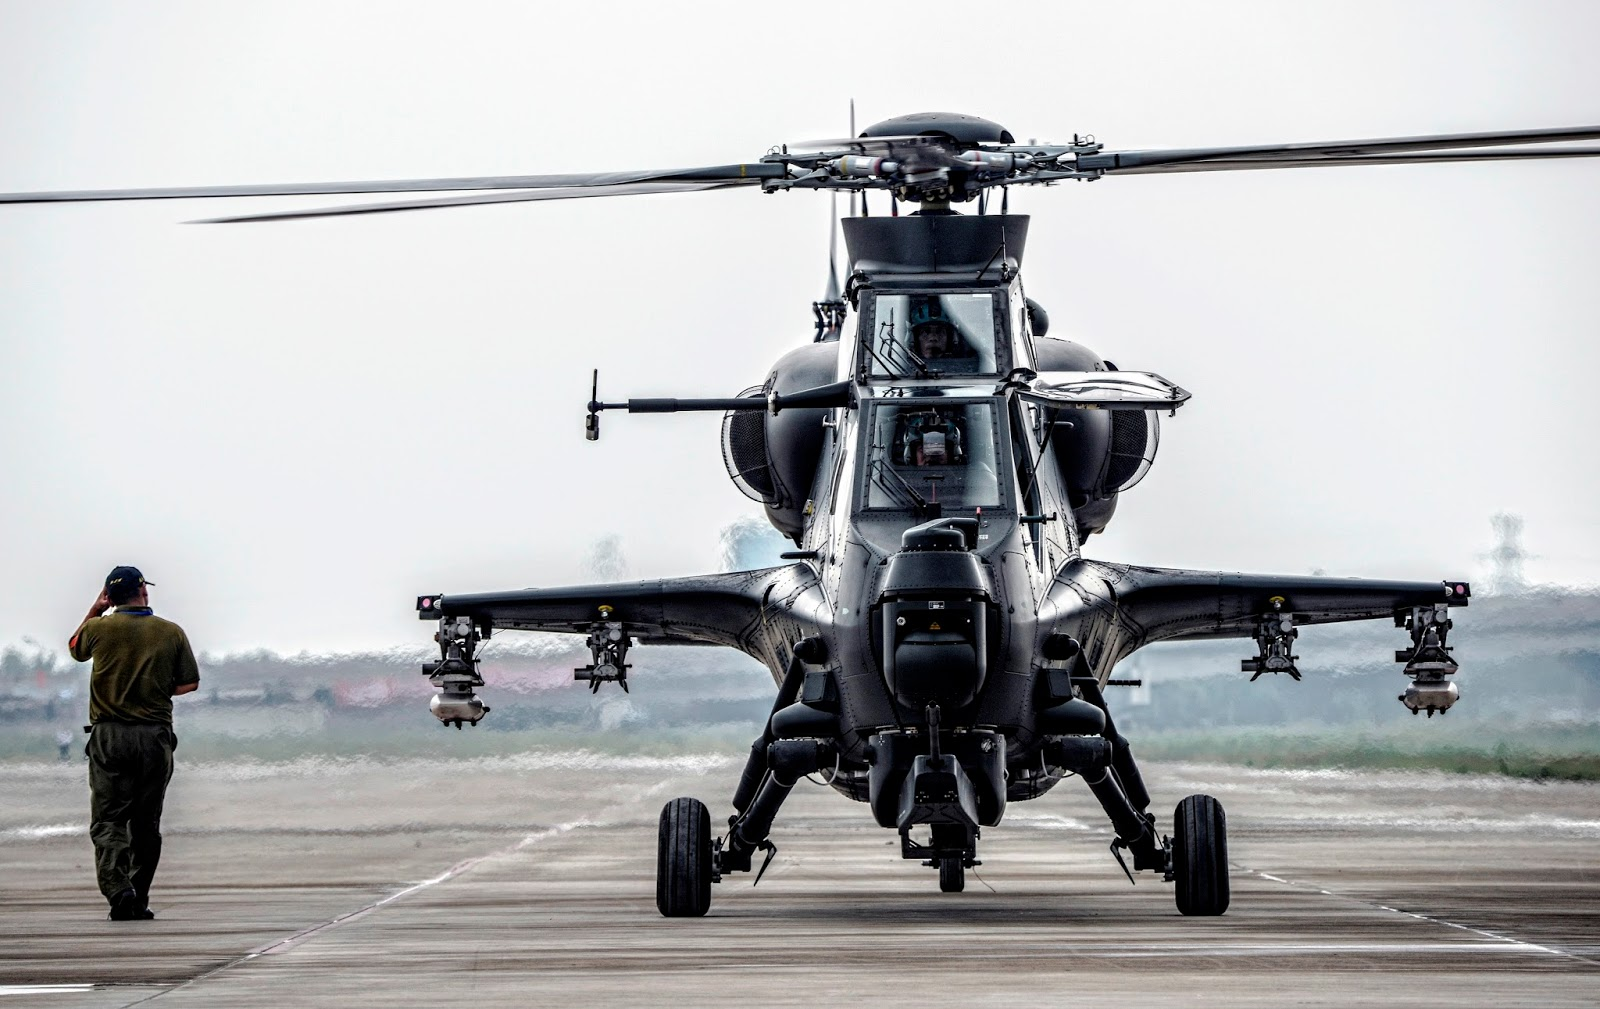 WZ-10 Attack Helicopters of the Peoples Liberation Army ...